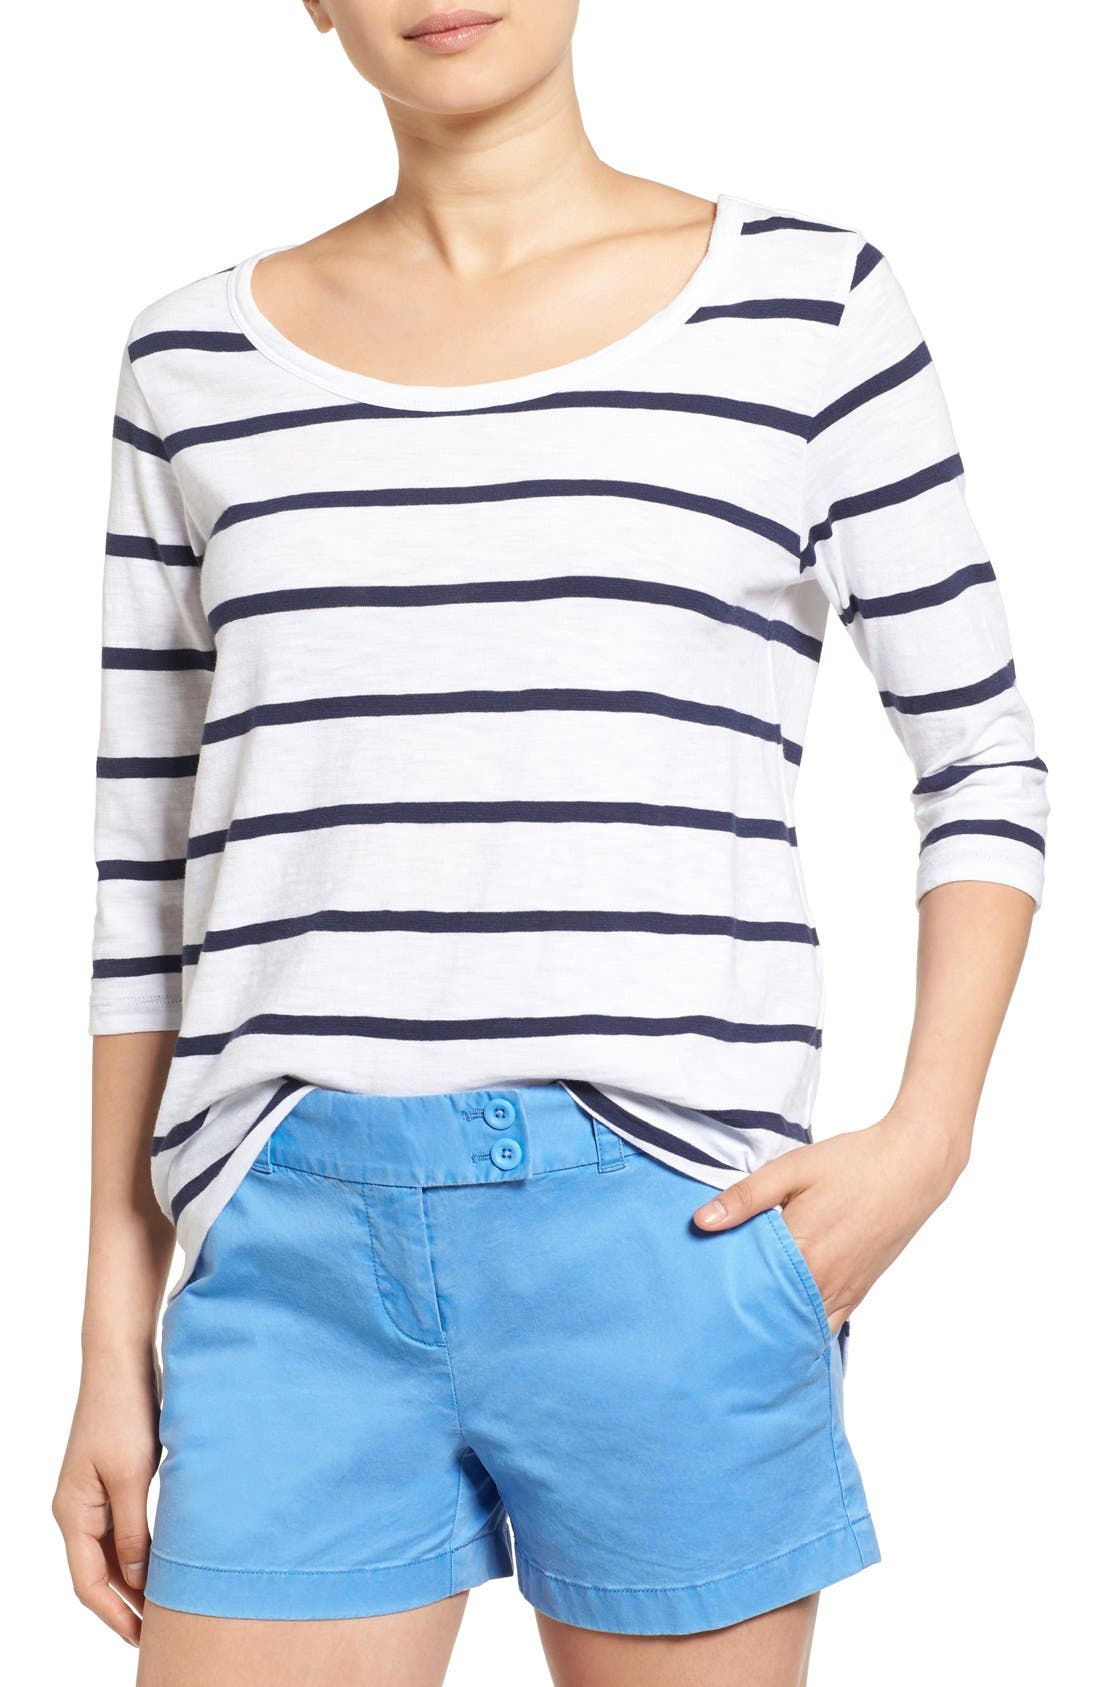 Alternate Image 1 Selected - Vineyard Vines 'Anguilla' Stripe Tee